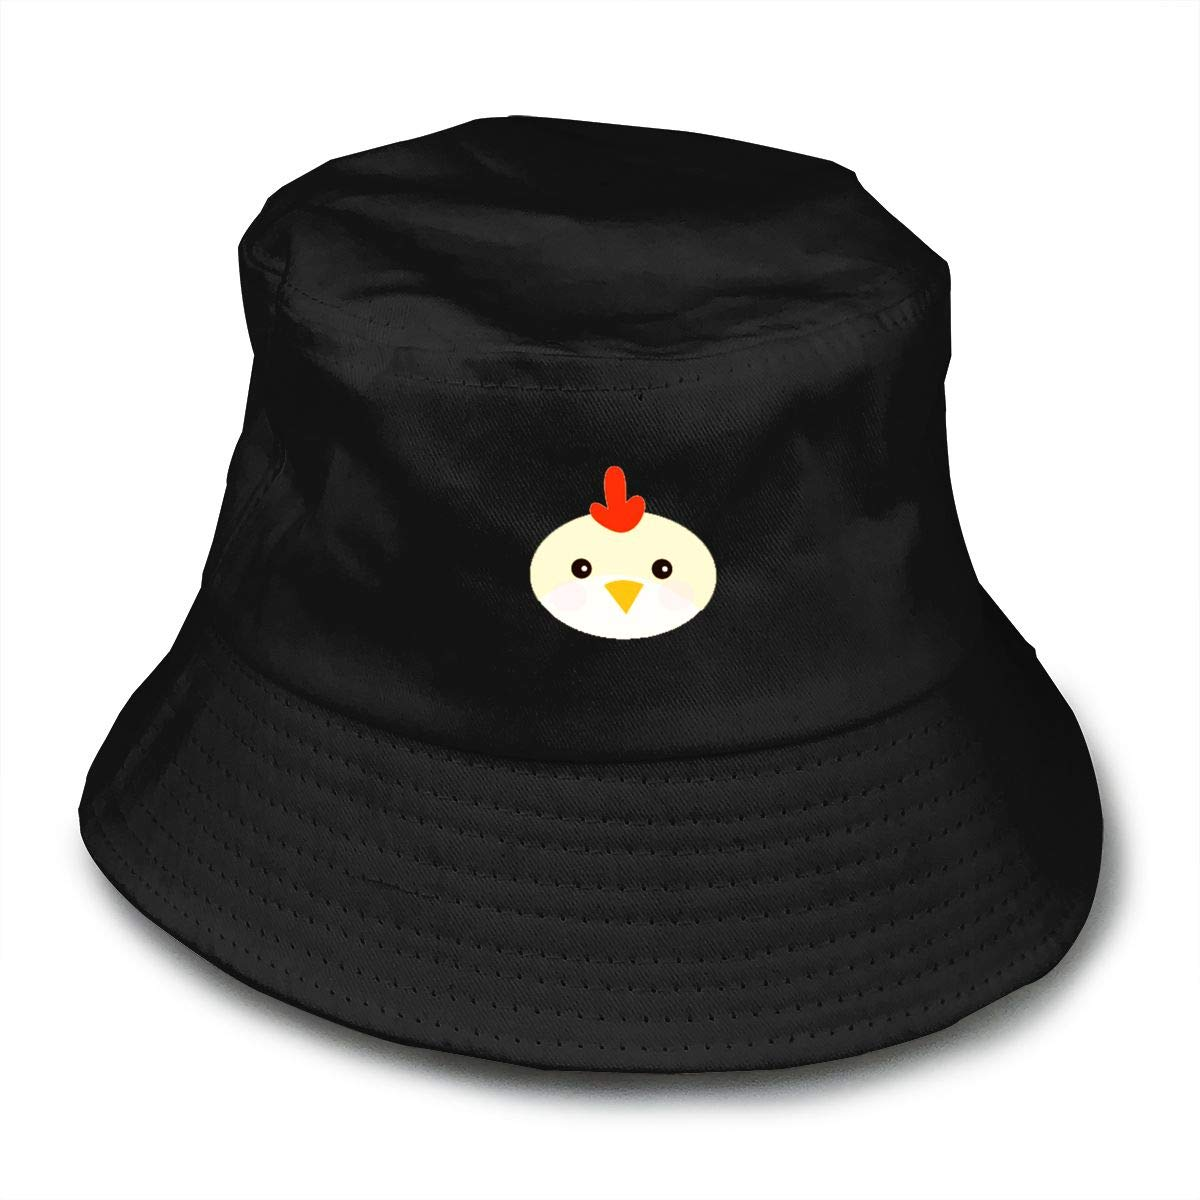 Little Chicken Bucket Hat Summer Fisherman Cap Foldable Sun Protection Hat ed40beddfef